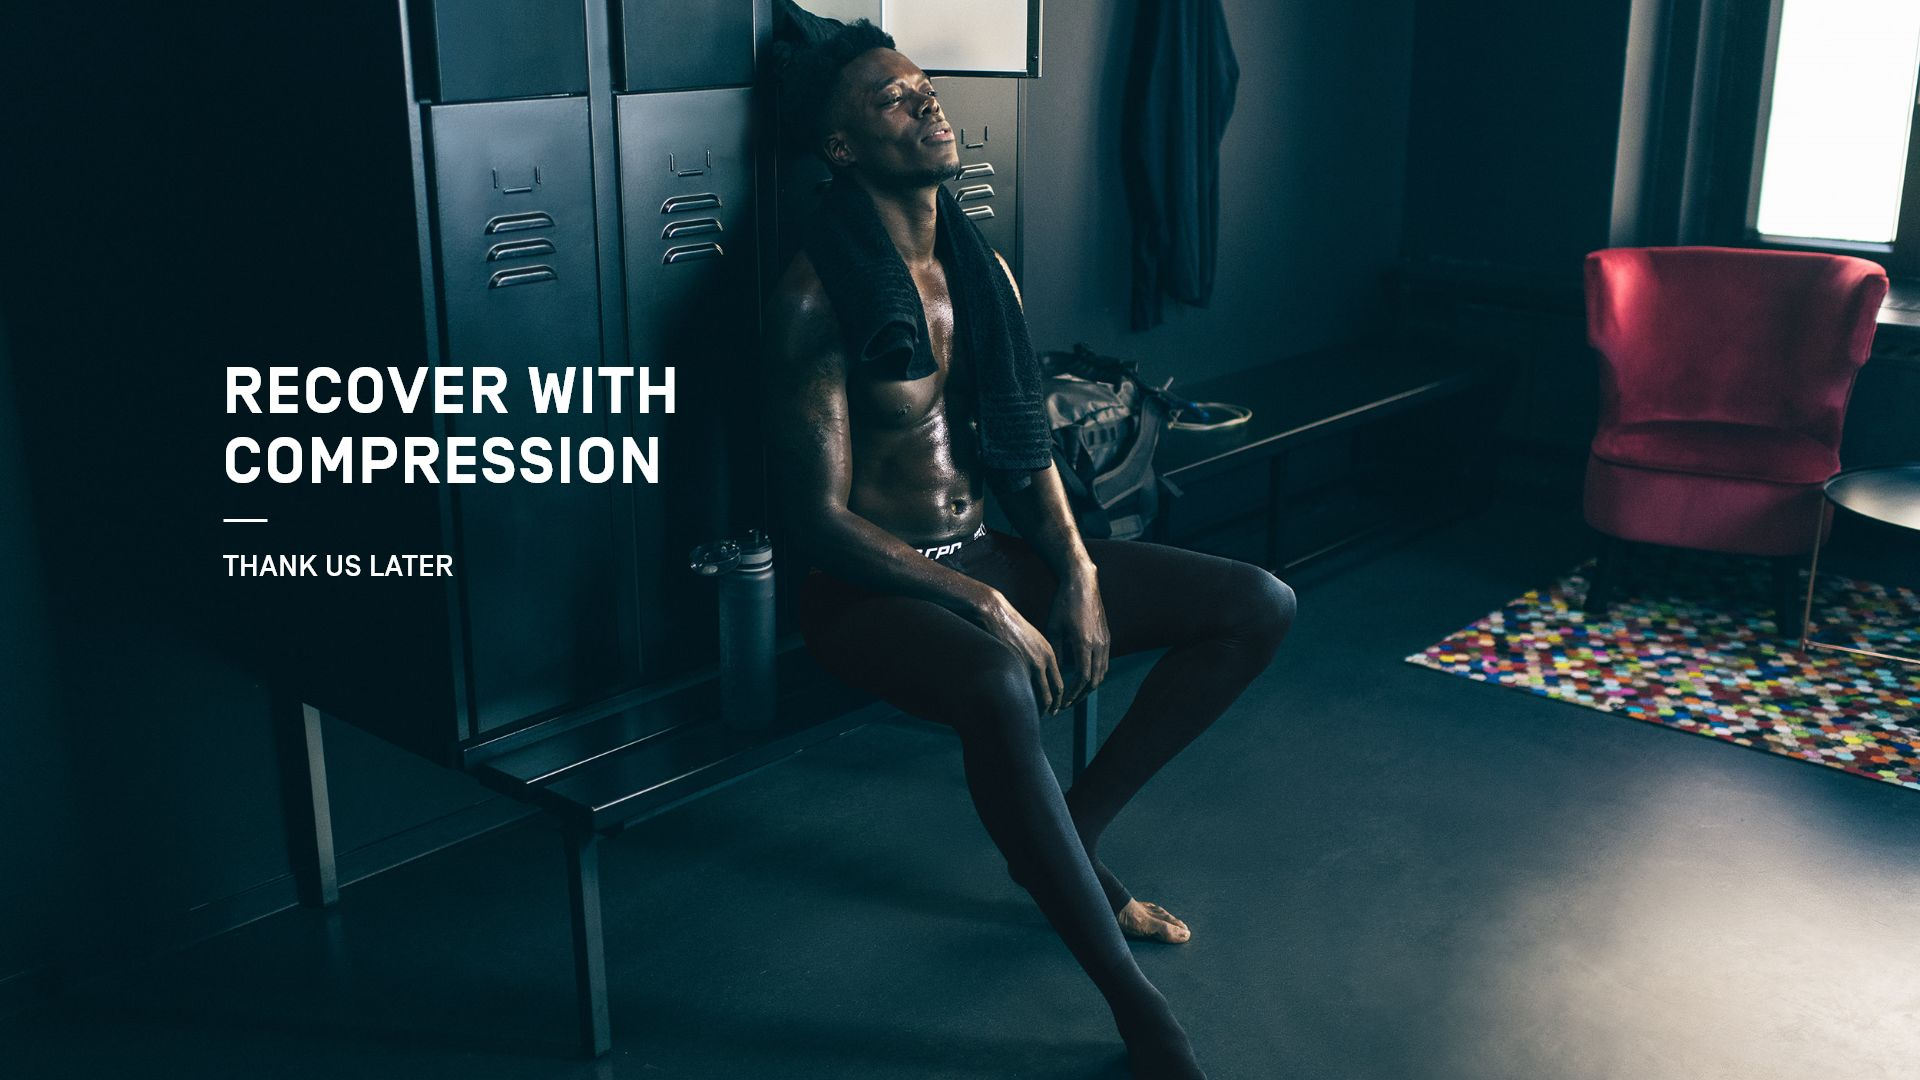 recover with compression